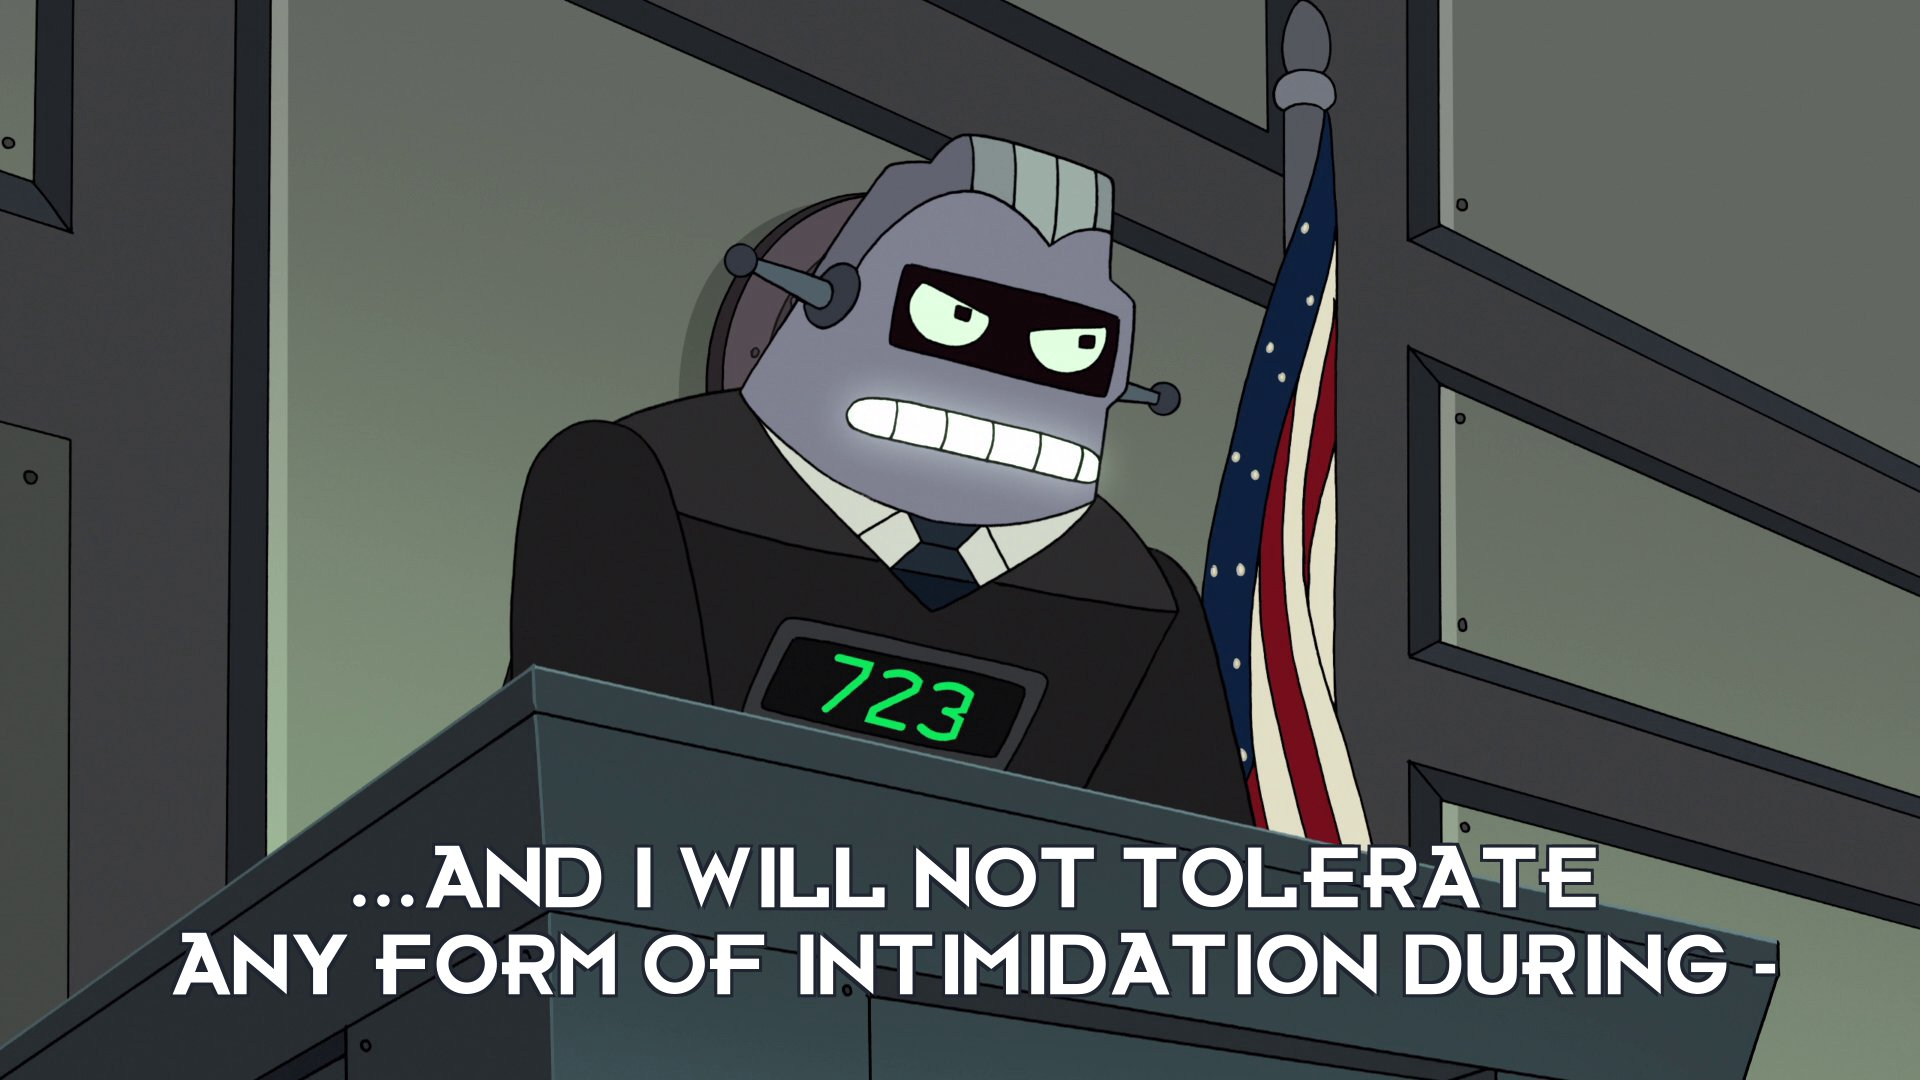 Judge 723: ...and I will not tolerate any form of intimidation during –